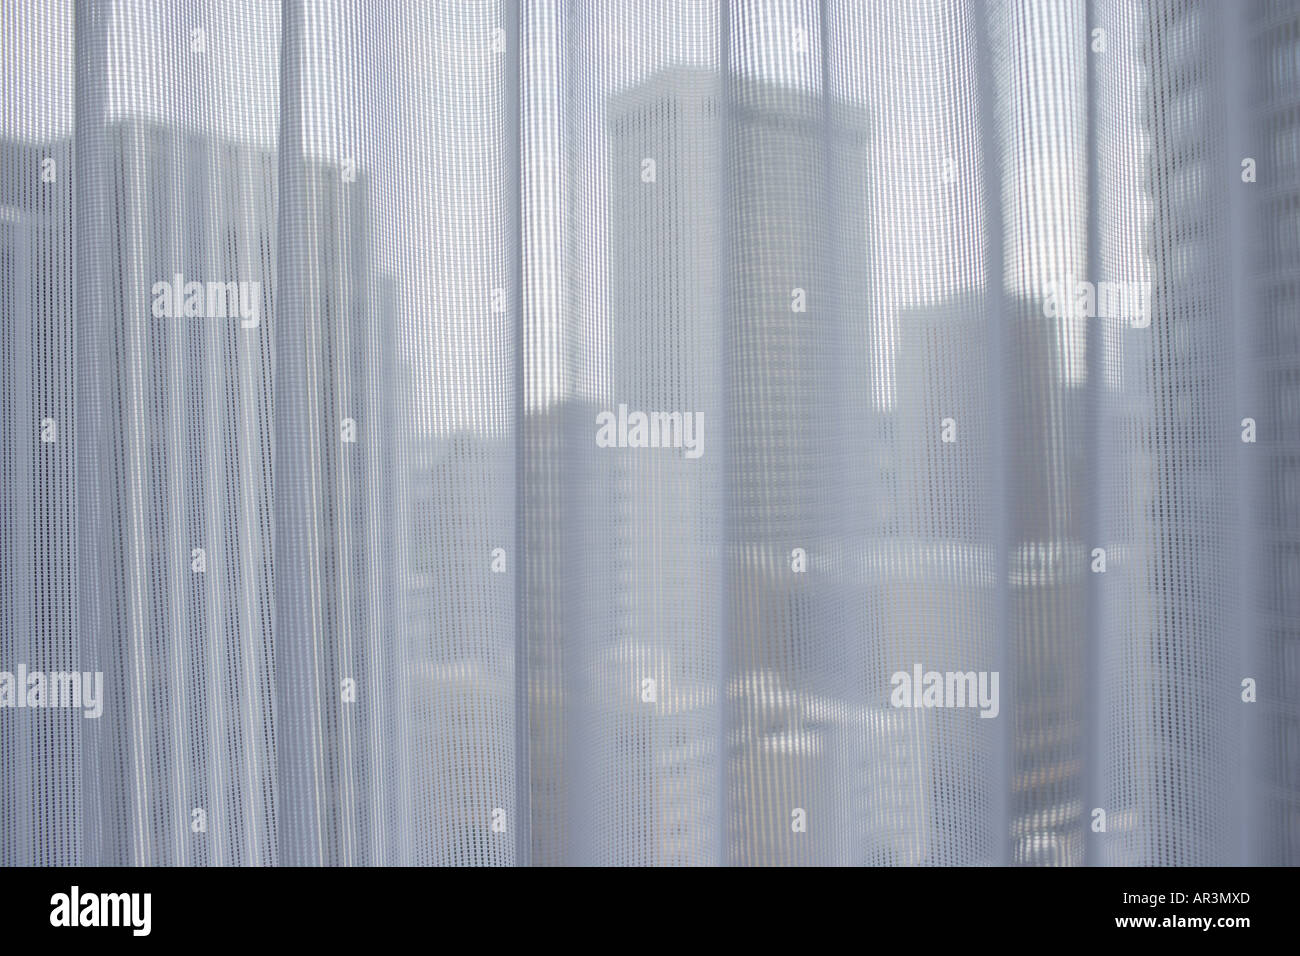 City buildings seen through net curtains - Stock Image